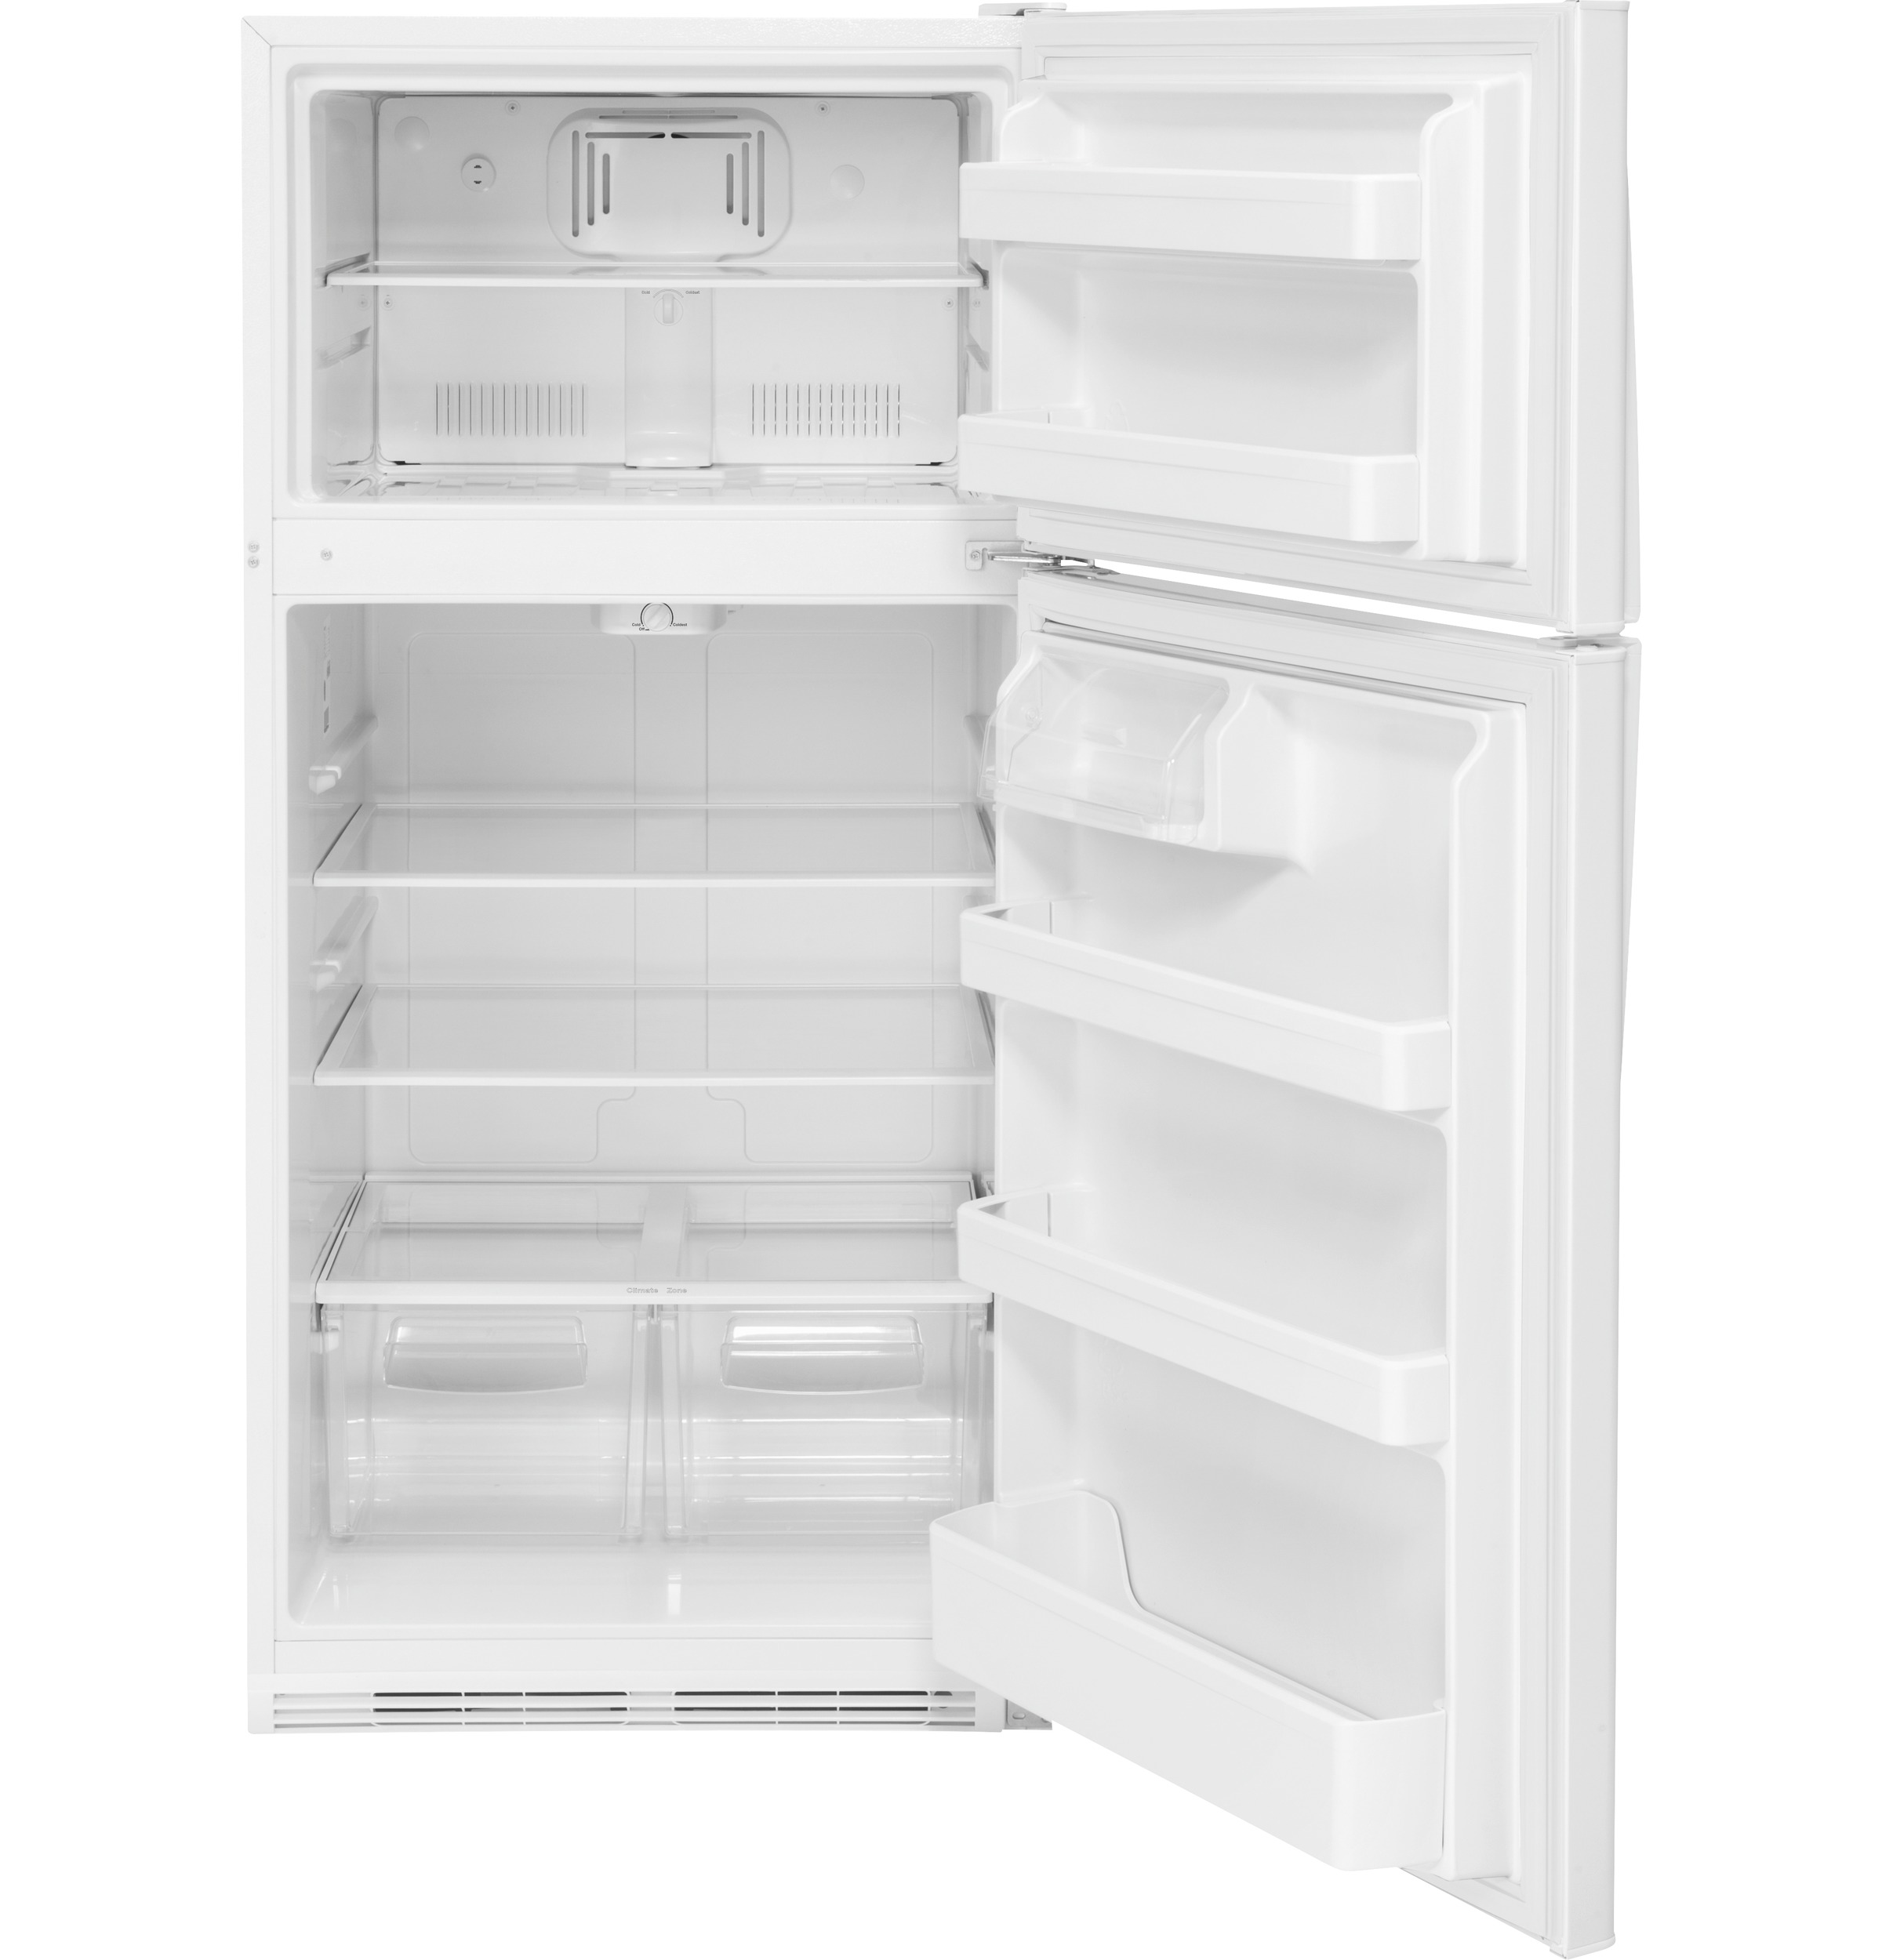 Model: 3GTS21FGKWWWEB | GE GE® 20.8 Cu. Ft. Top-Freezer Refrigerator